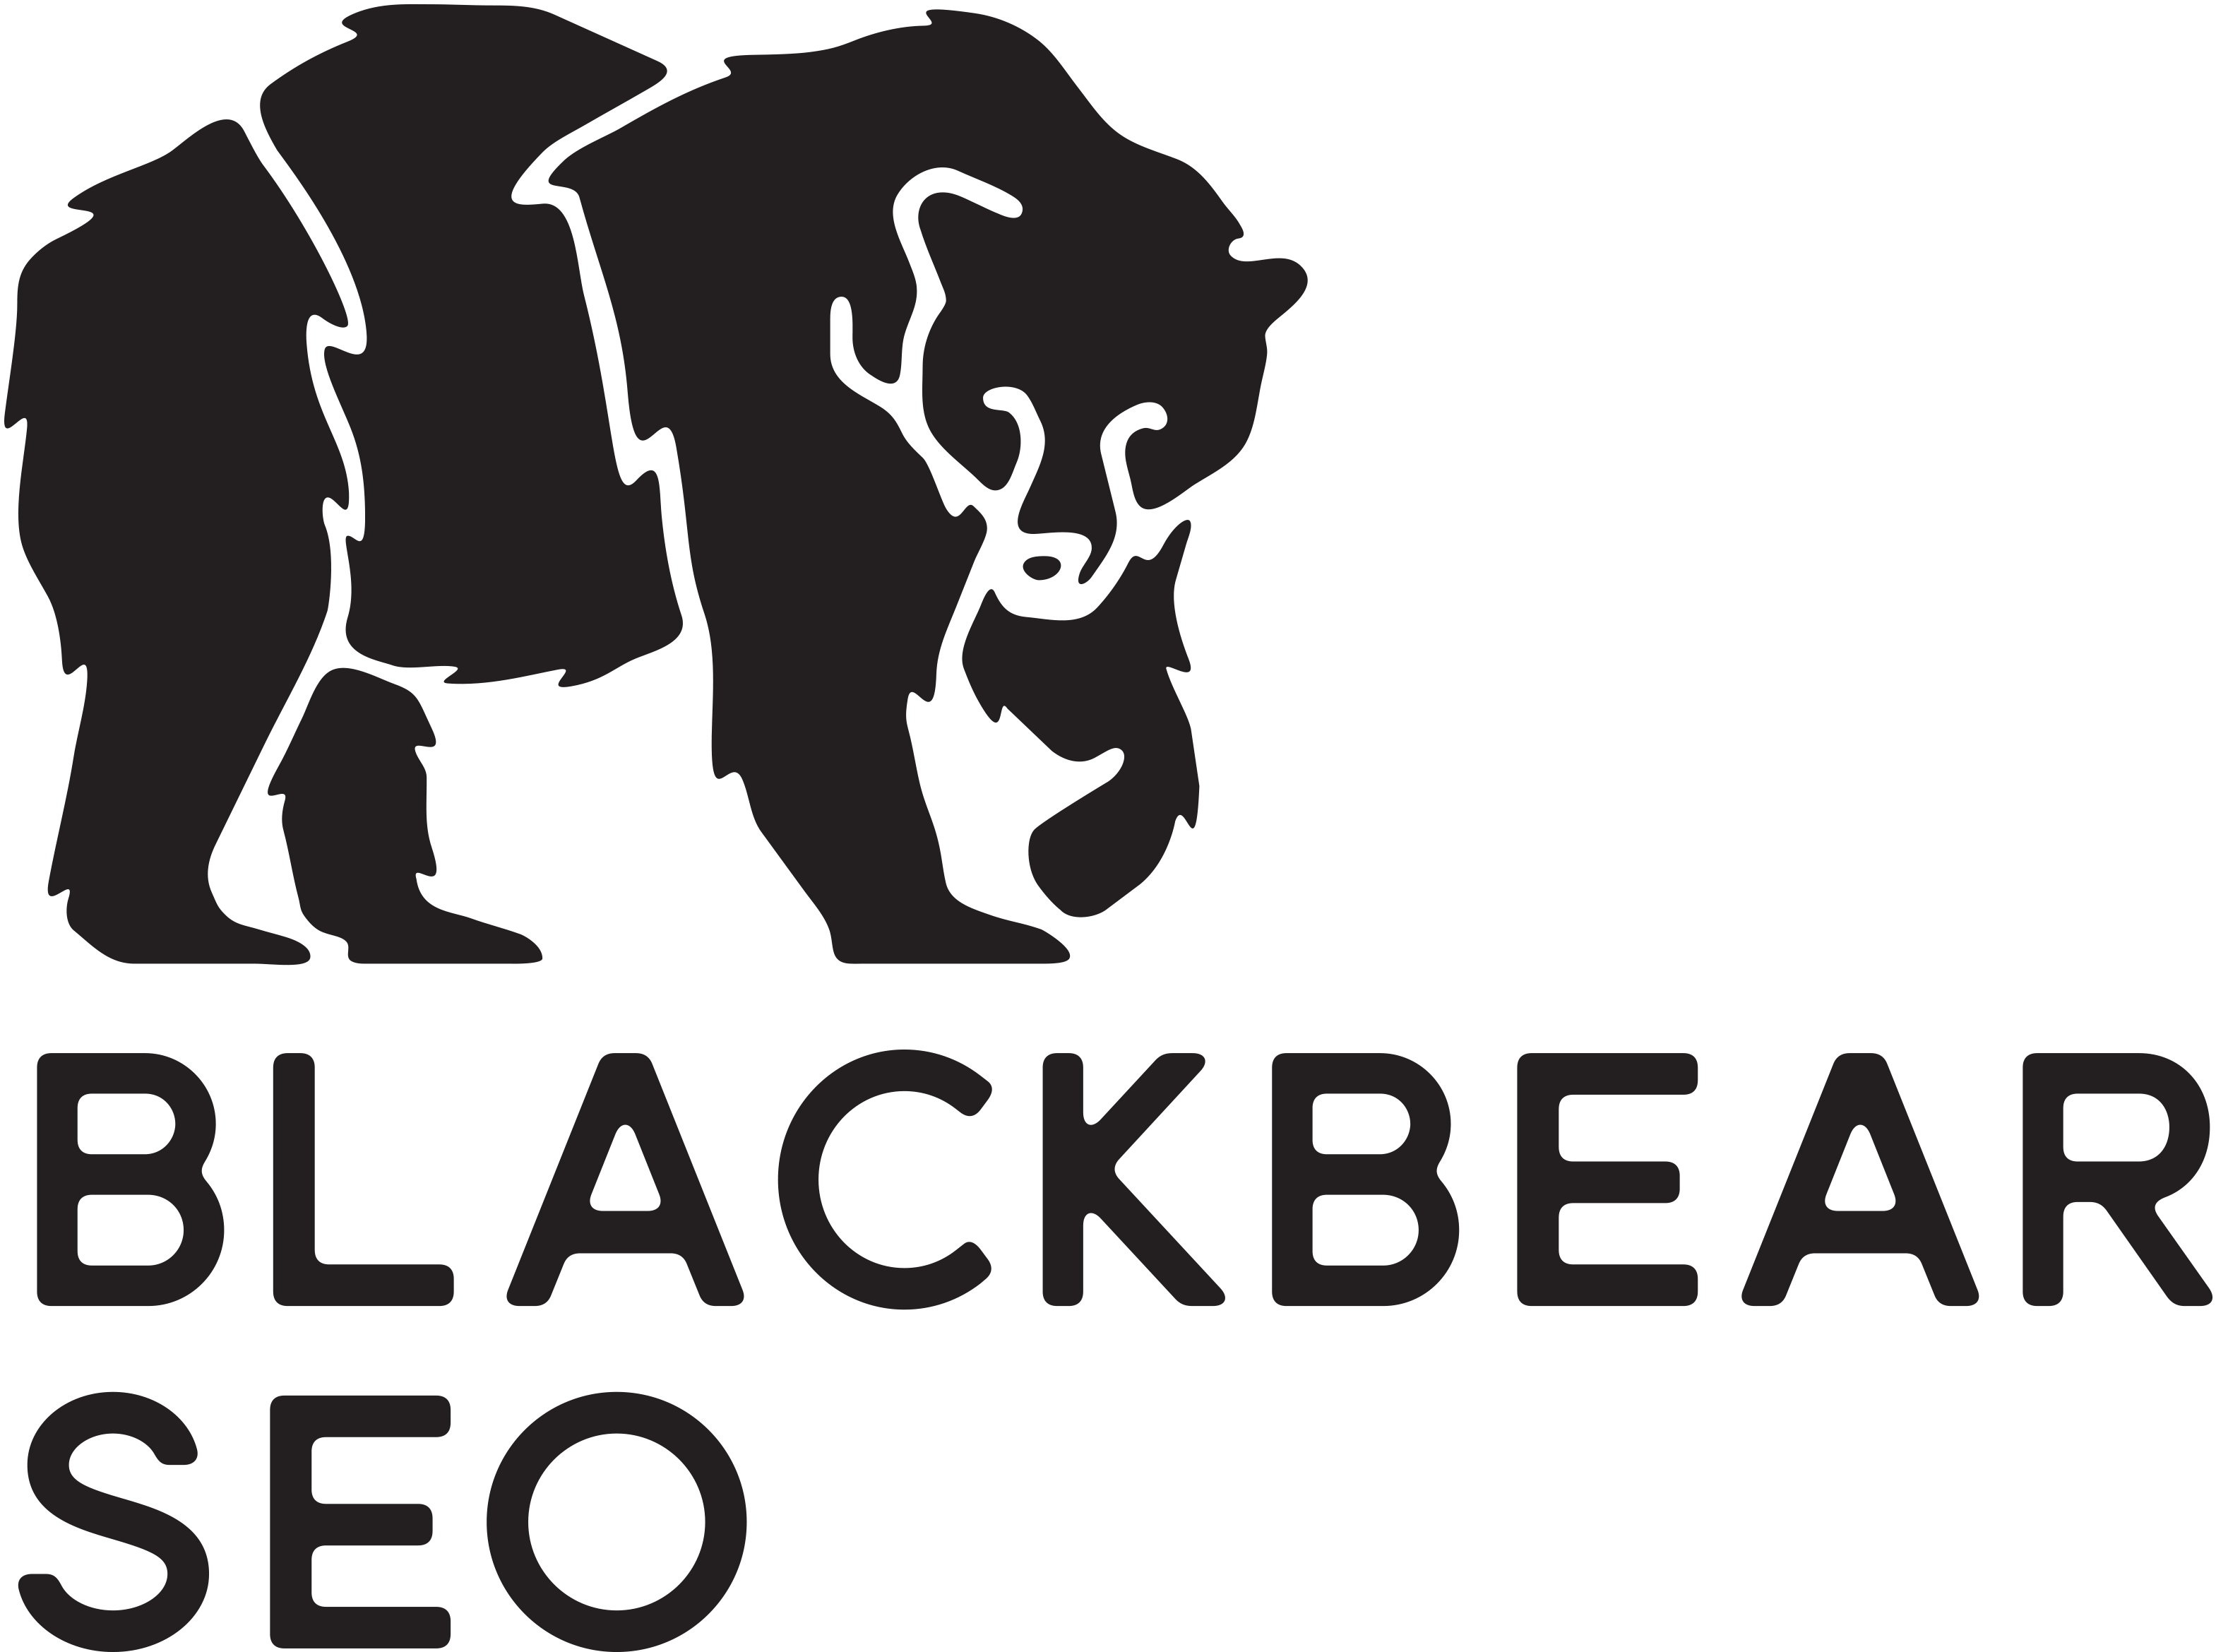 Black Bear SEO